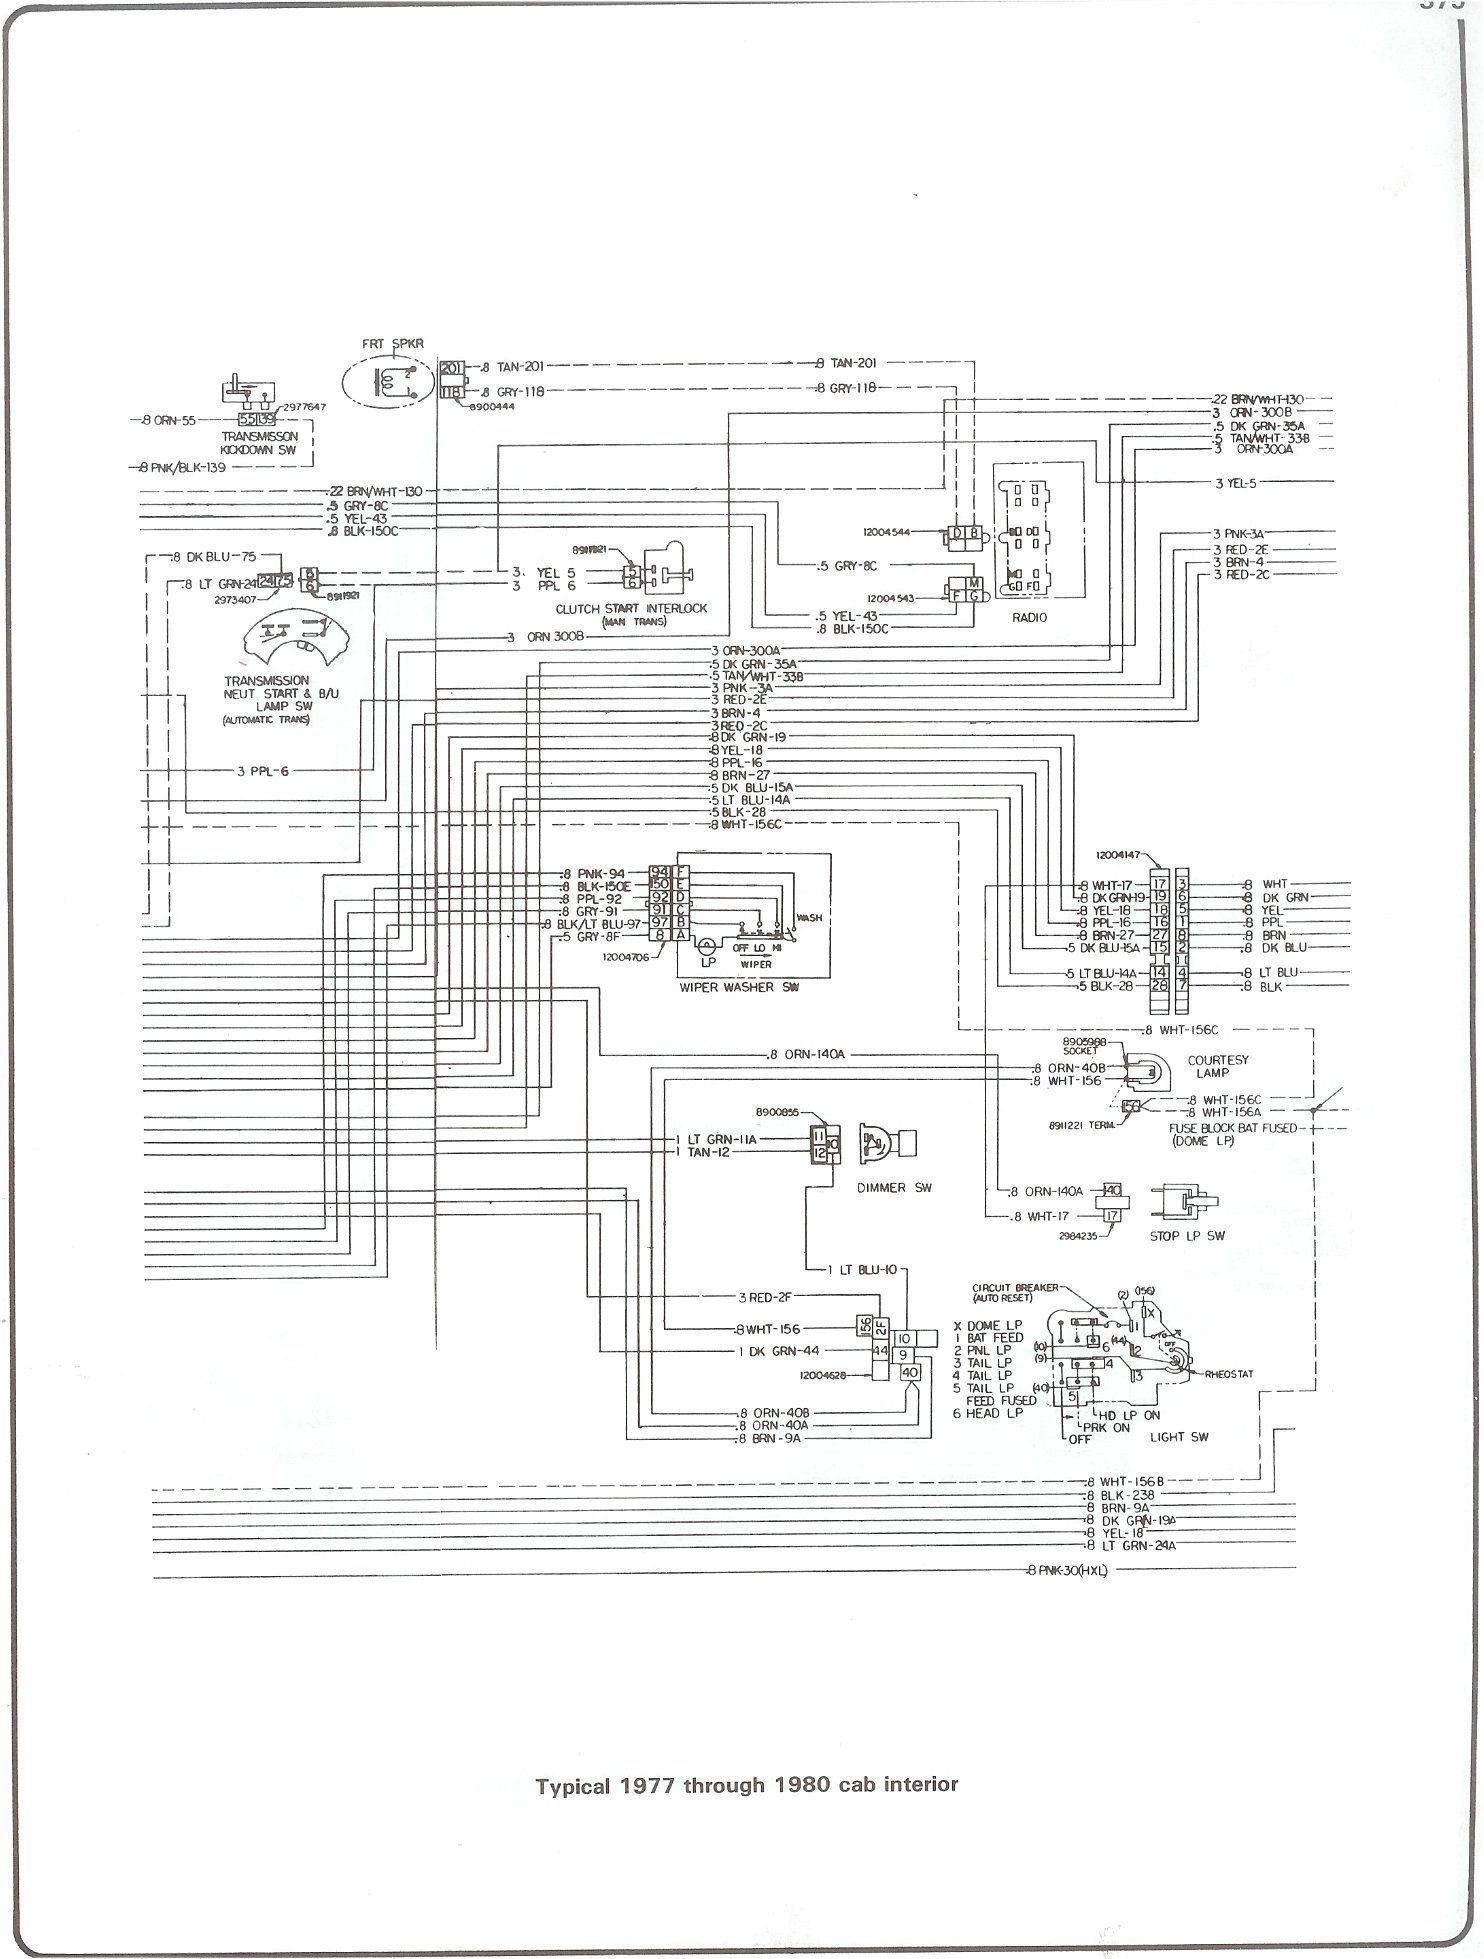 Complete 73 87 Wiring Diagrams 1984 Chevy K20 86 K20 Wiring Diagram